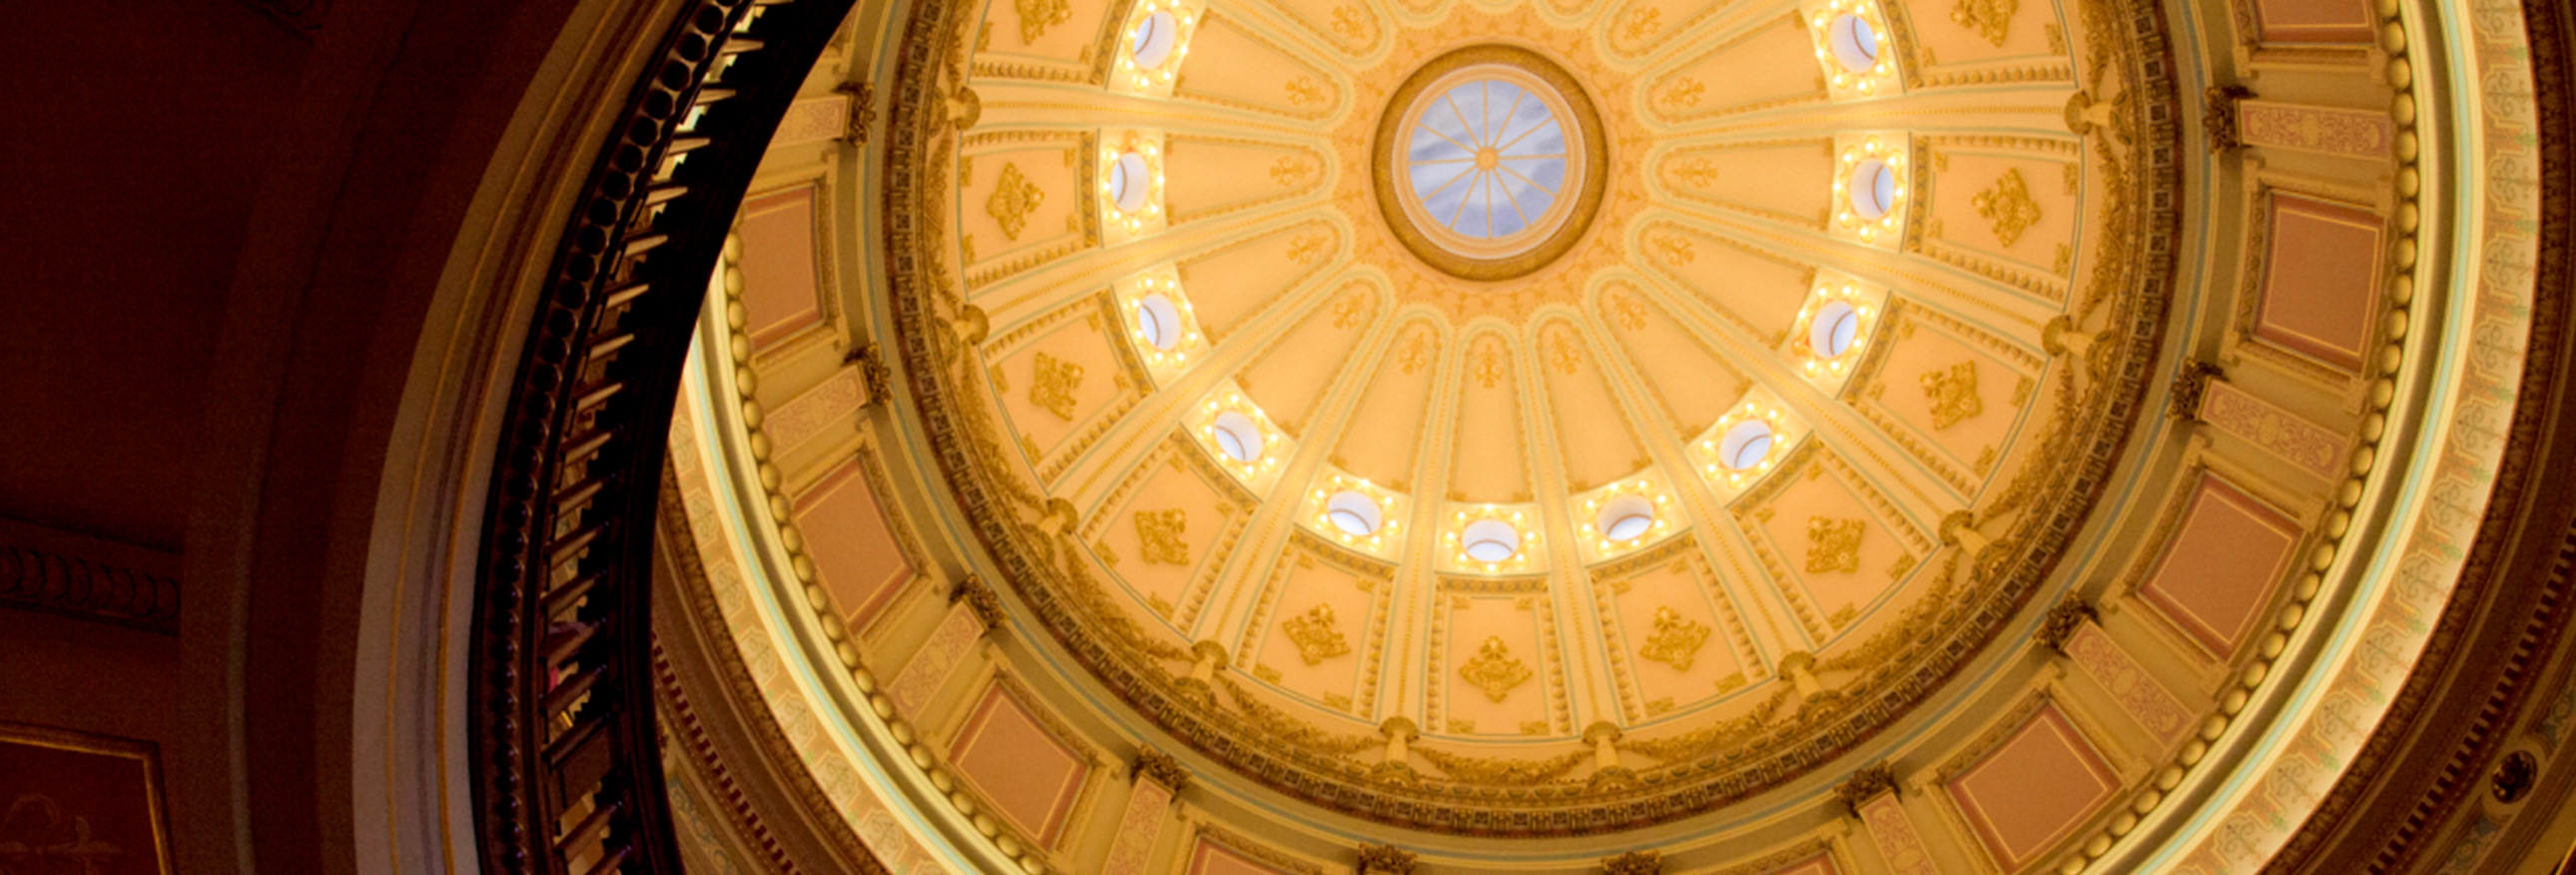 view looking up to rotunda of California capital building in Sacramento